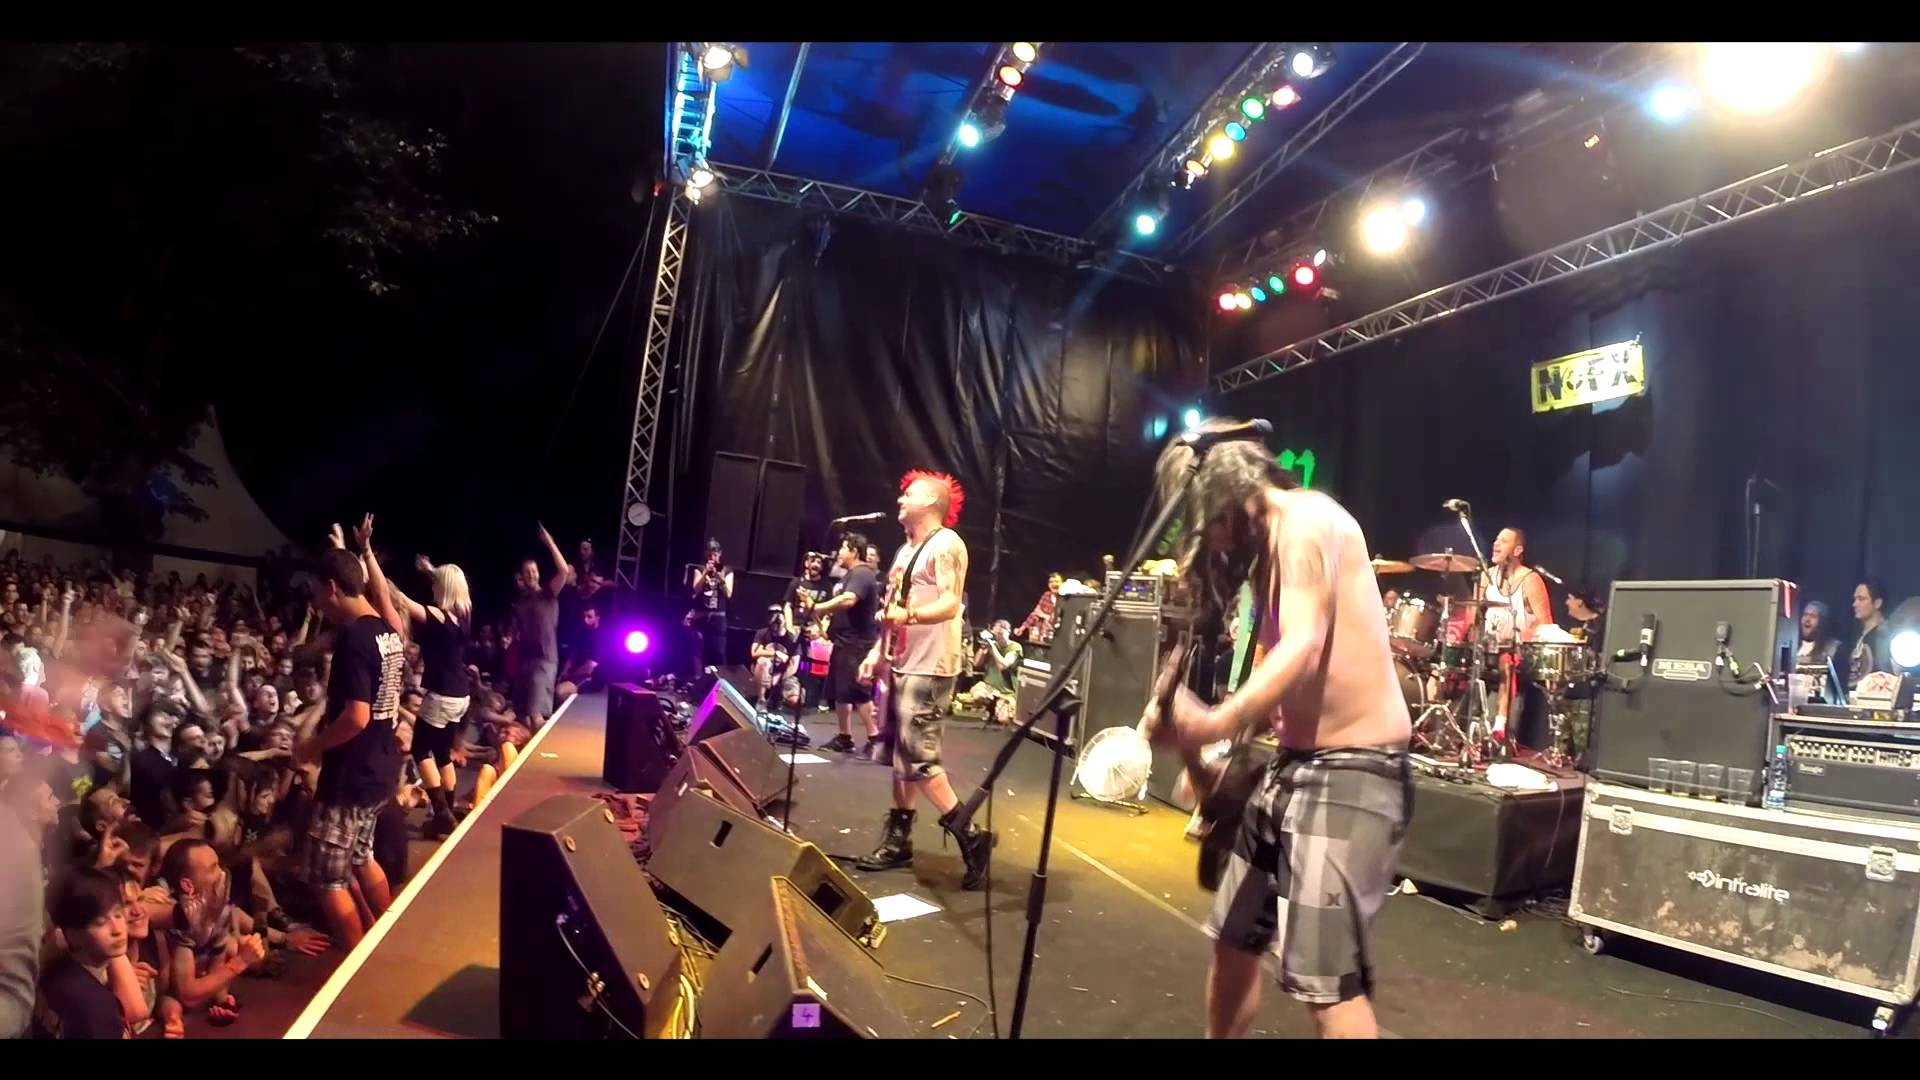 After thirty years on stage NOFX is still punk in drublic